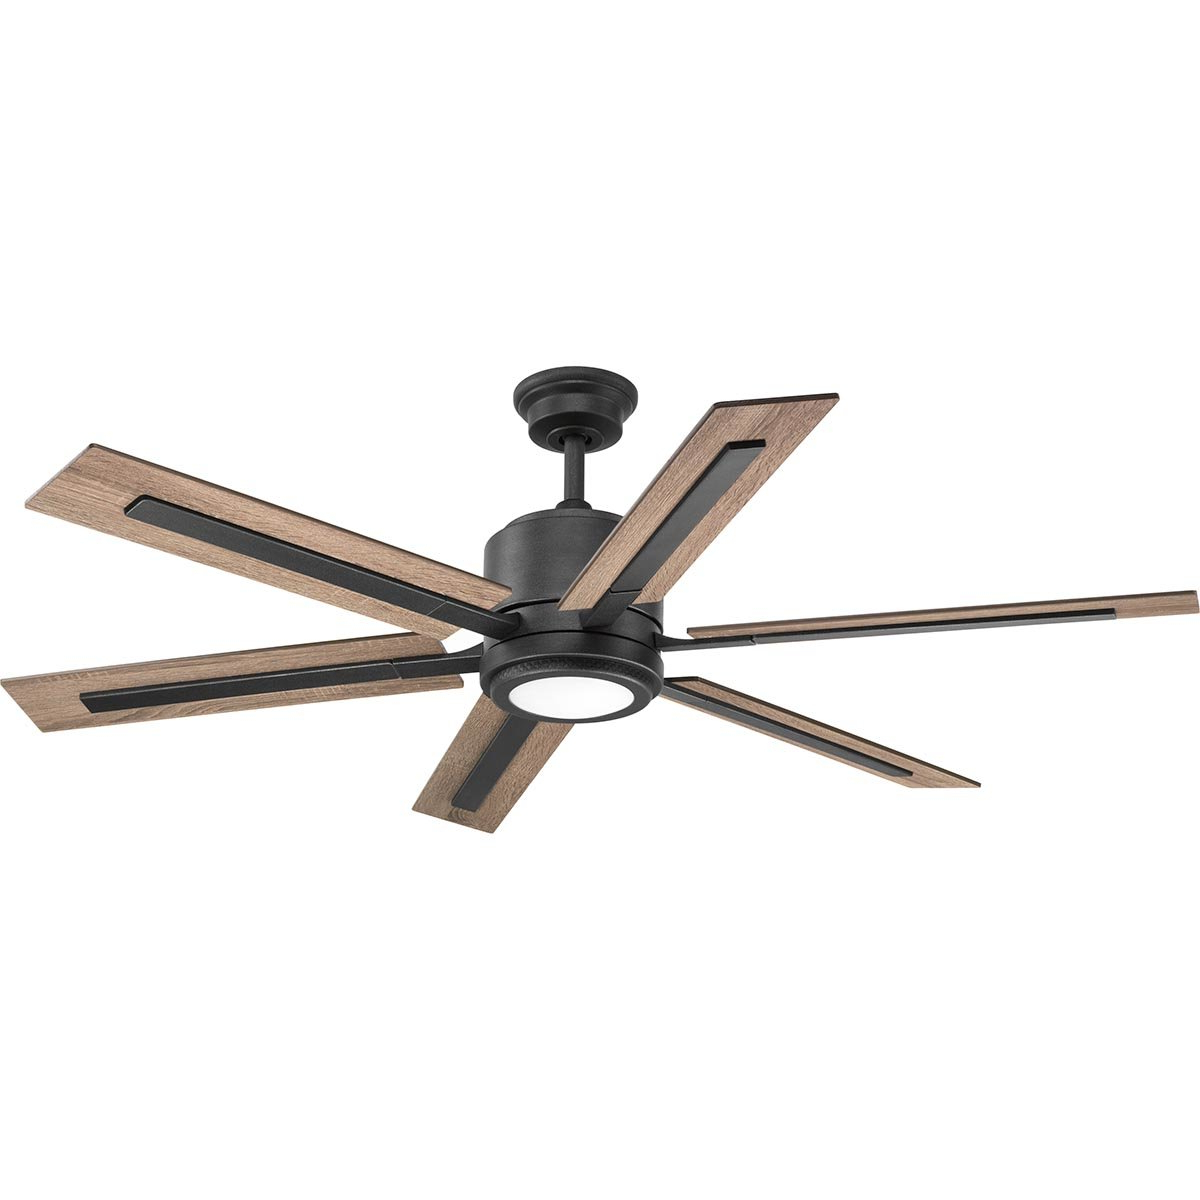 Valerian 5 Blade Ceiling Fans Throughout Preferred 6 Or More Blade Ceiling Fans (View 19 of 20)